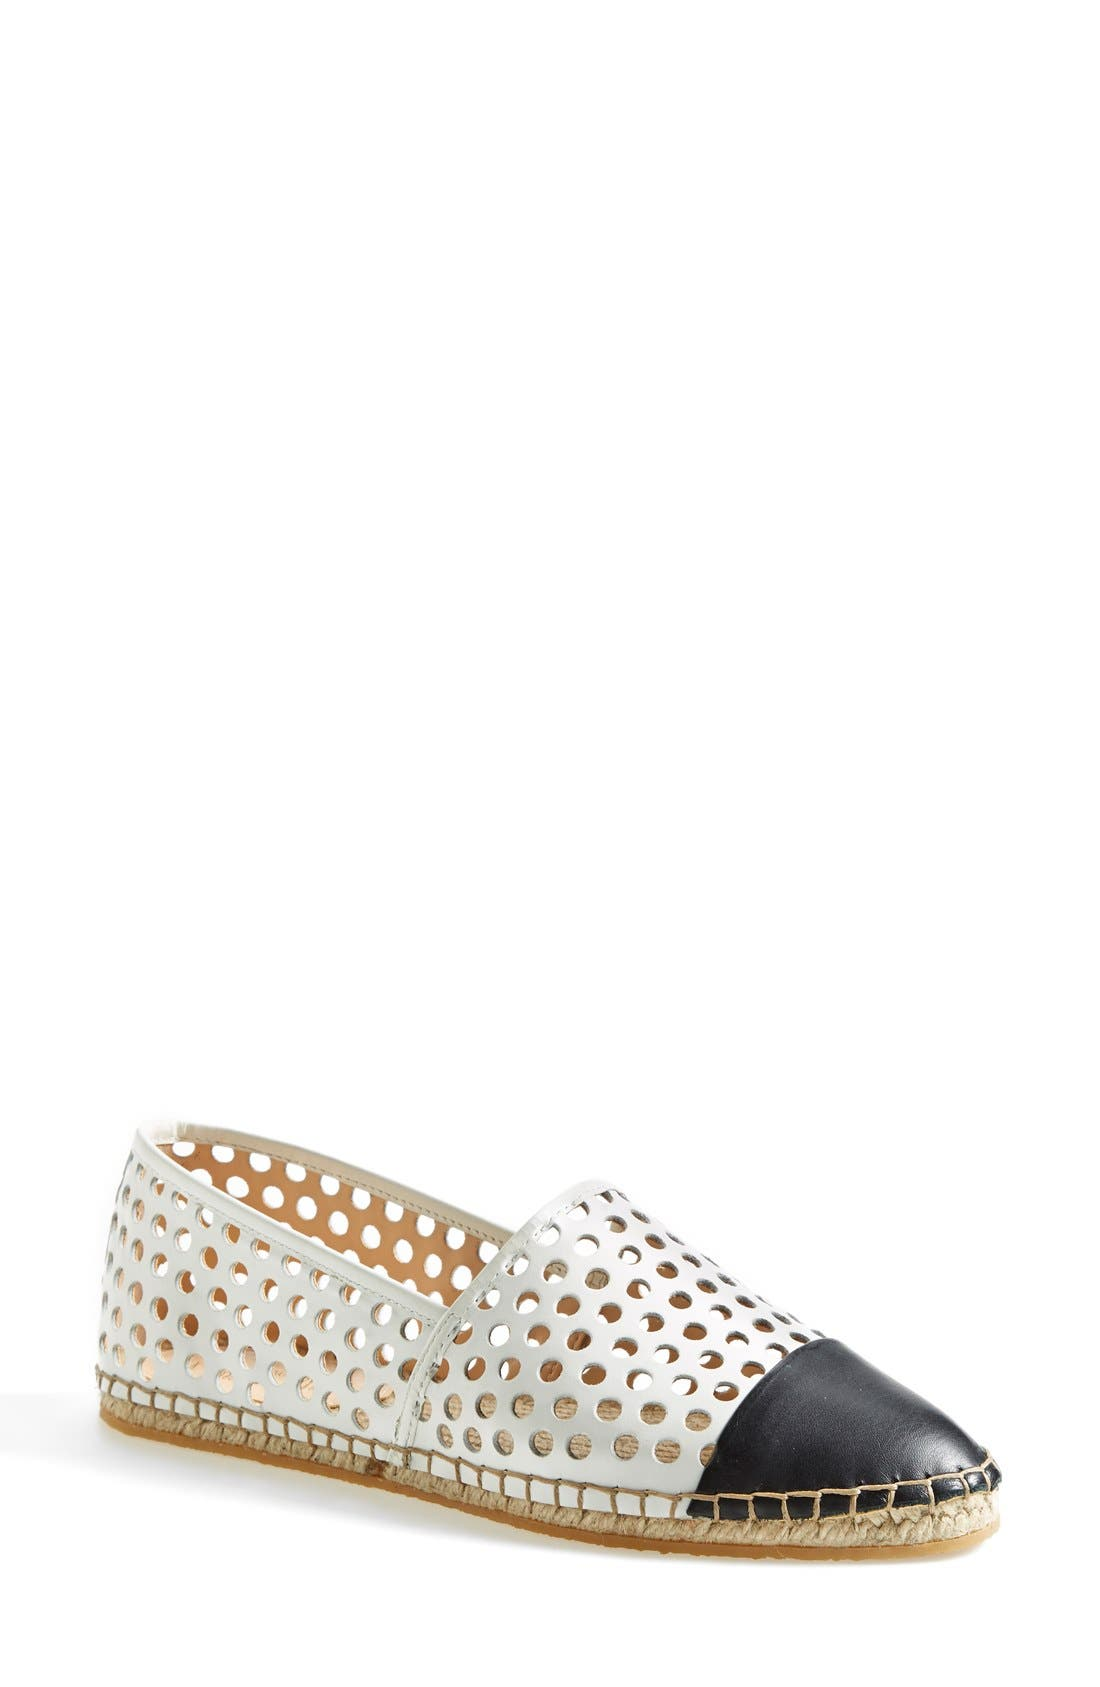 'Mara' Espadrille Flat,                         Main,                         color, 100